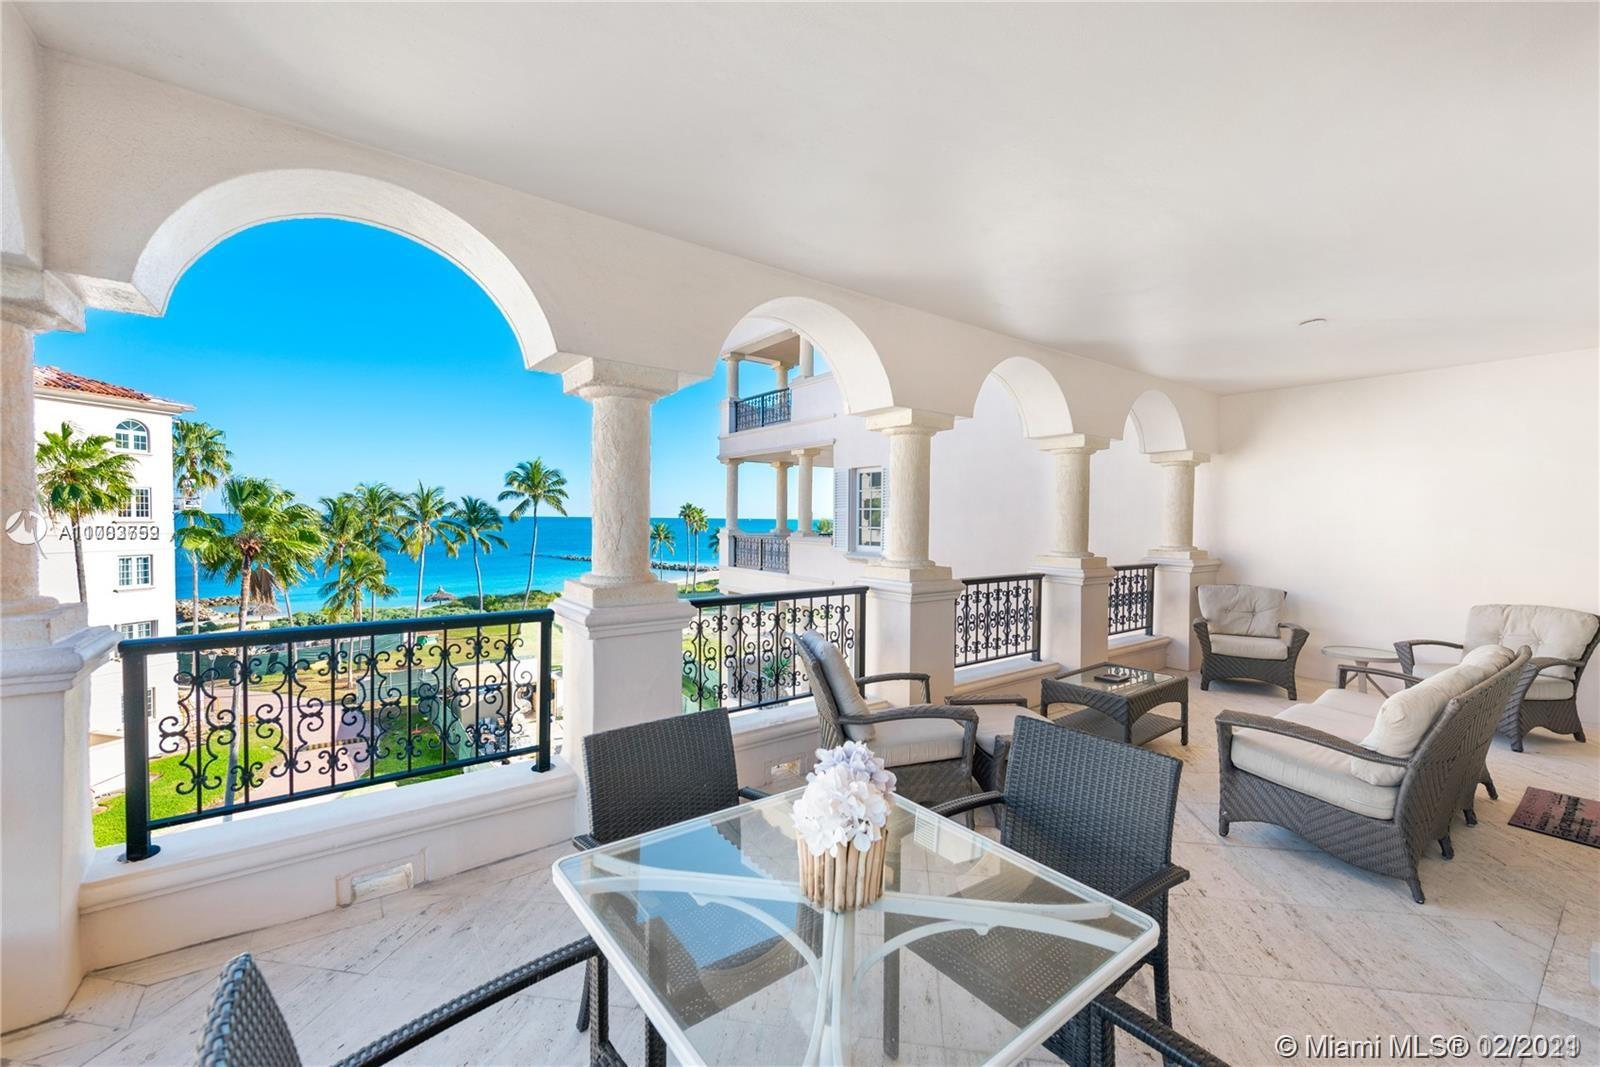 BRIGHT MODERN SEASIDE VILLAGE WITH DIRECT OCEAN AND MIAMI SKYLINE VIEWS. THIS UNIT HAS BEEN COMPLETELY RENOVATED.  FEATURES: 3 BEDROOMS, A LARGE DEN AND 3 BATHS, MARBLE FLOORS, MULTIPLE TERRACES AND A PRIVATE OPEN EXPANSIVE TERRACE OF 550 SQFT WITH GOLF COURSE AND CITY VIEWS.